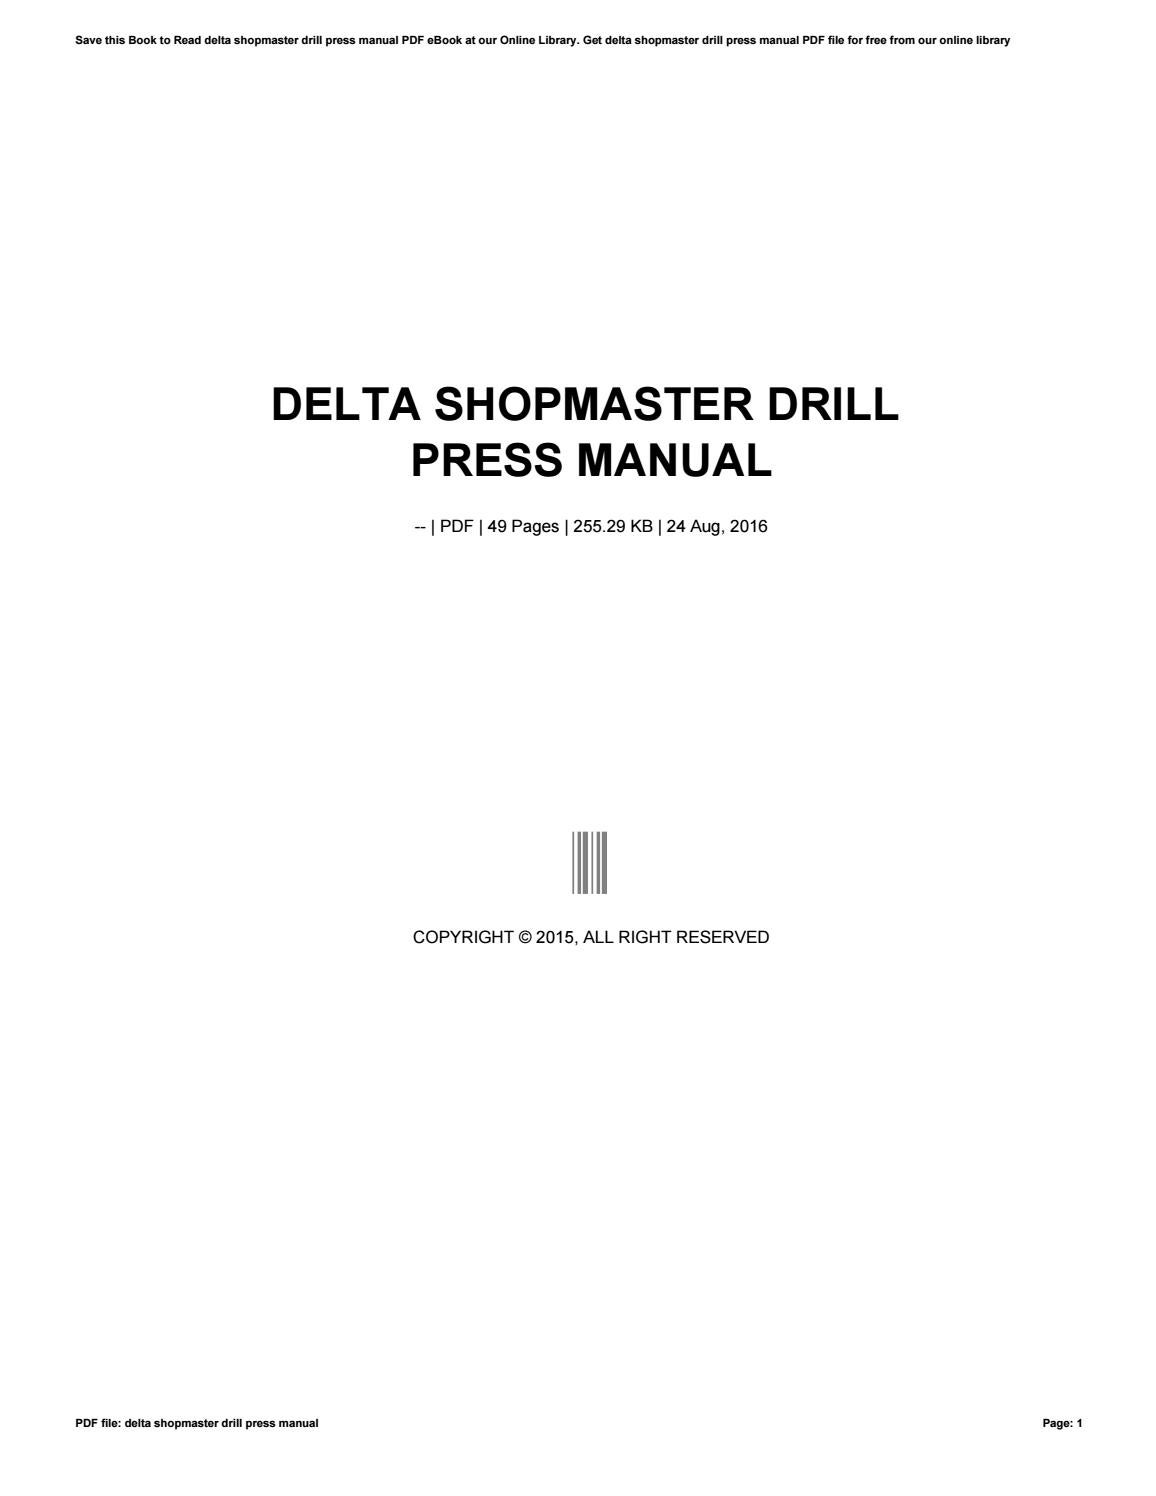 Delta shopmaster drill press manual by mailfs94 - issuu